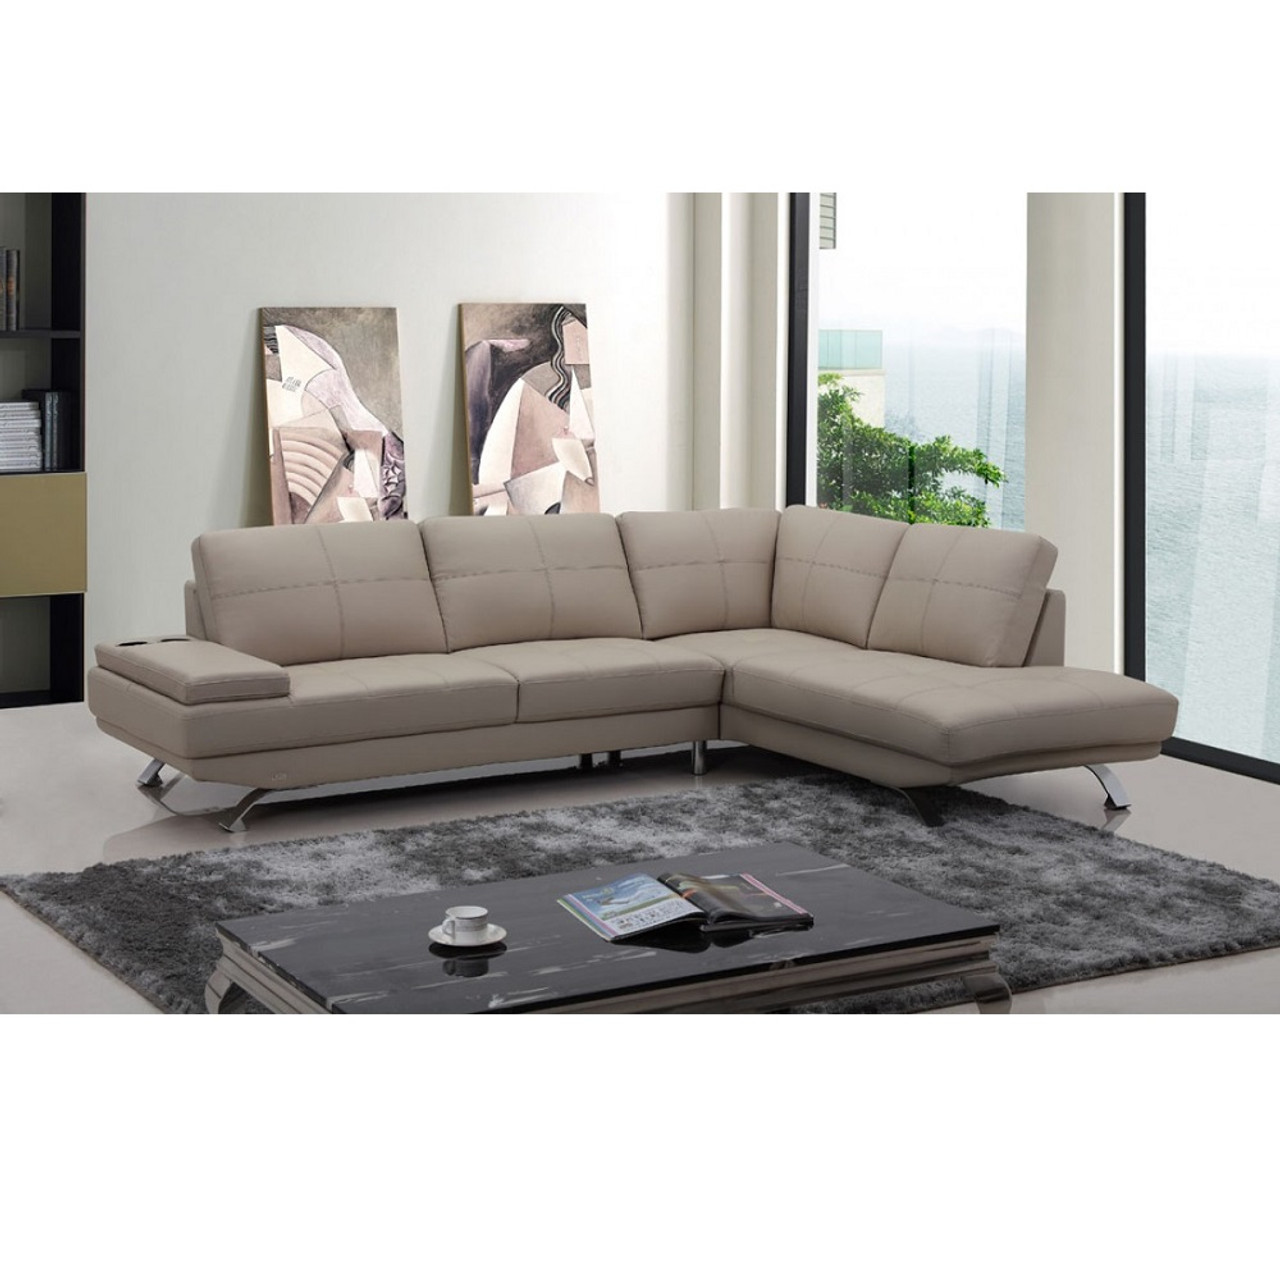 Superb Divani Casa Knight Modern Beige Leather Sectional Sofa Caraccident5 Cool Chair Designs And Ideas Caraccident5Info